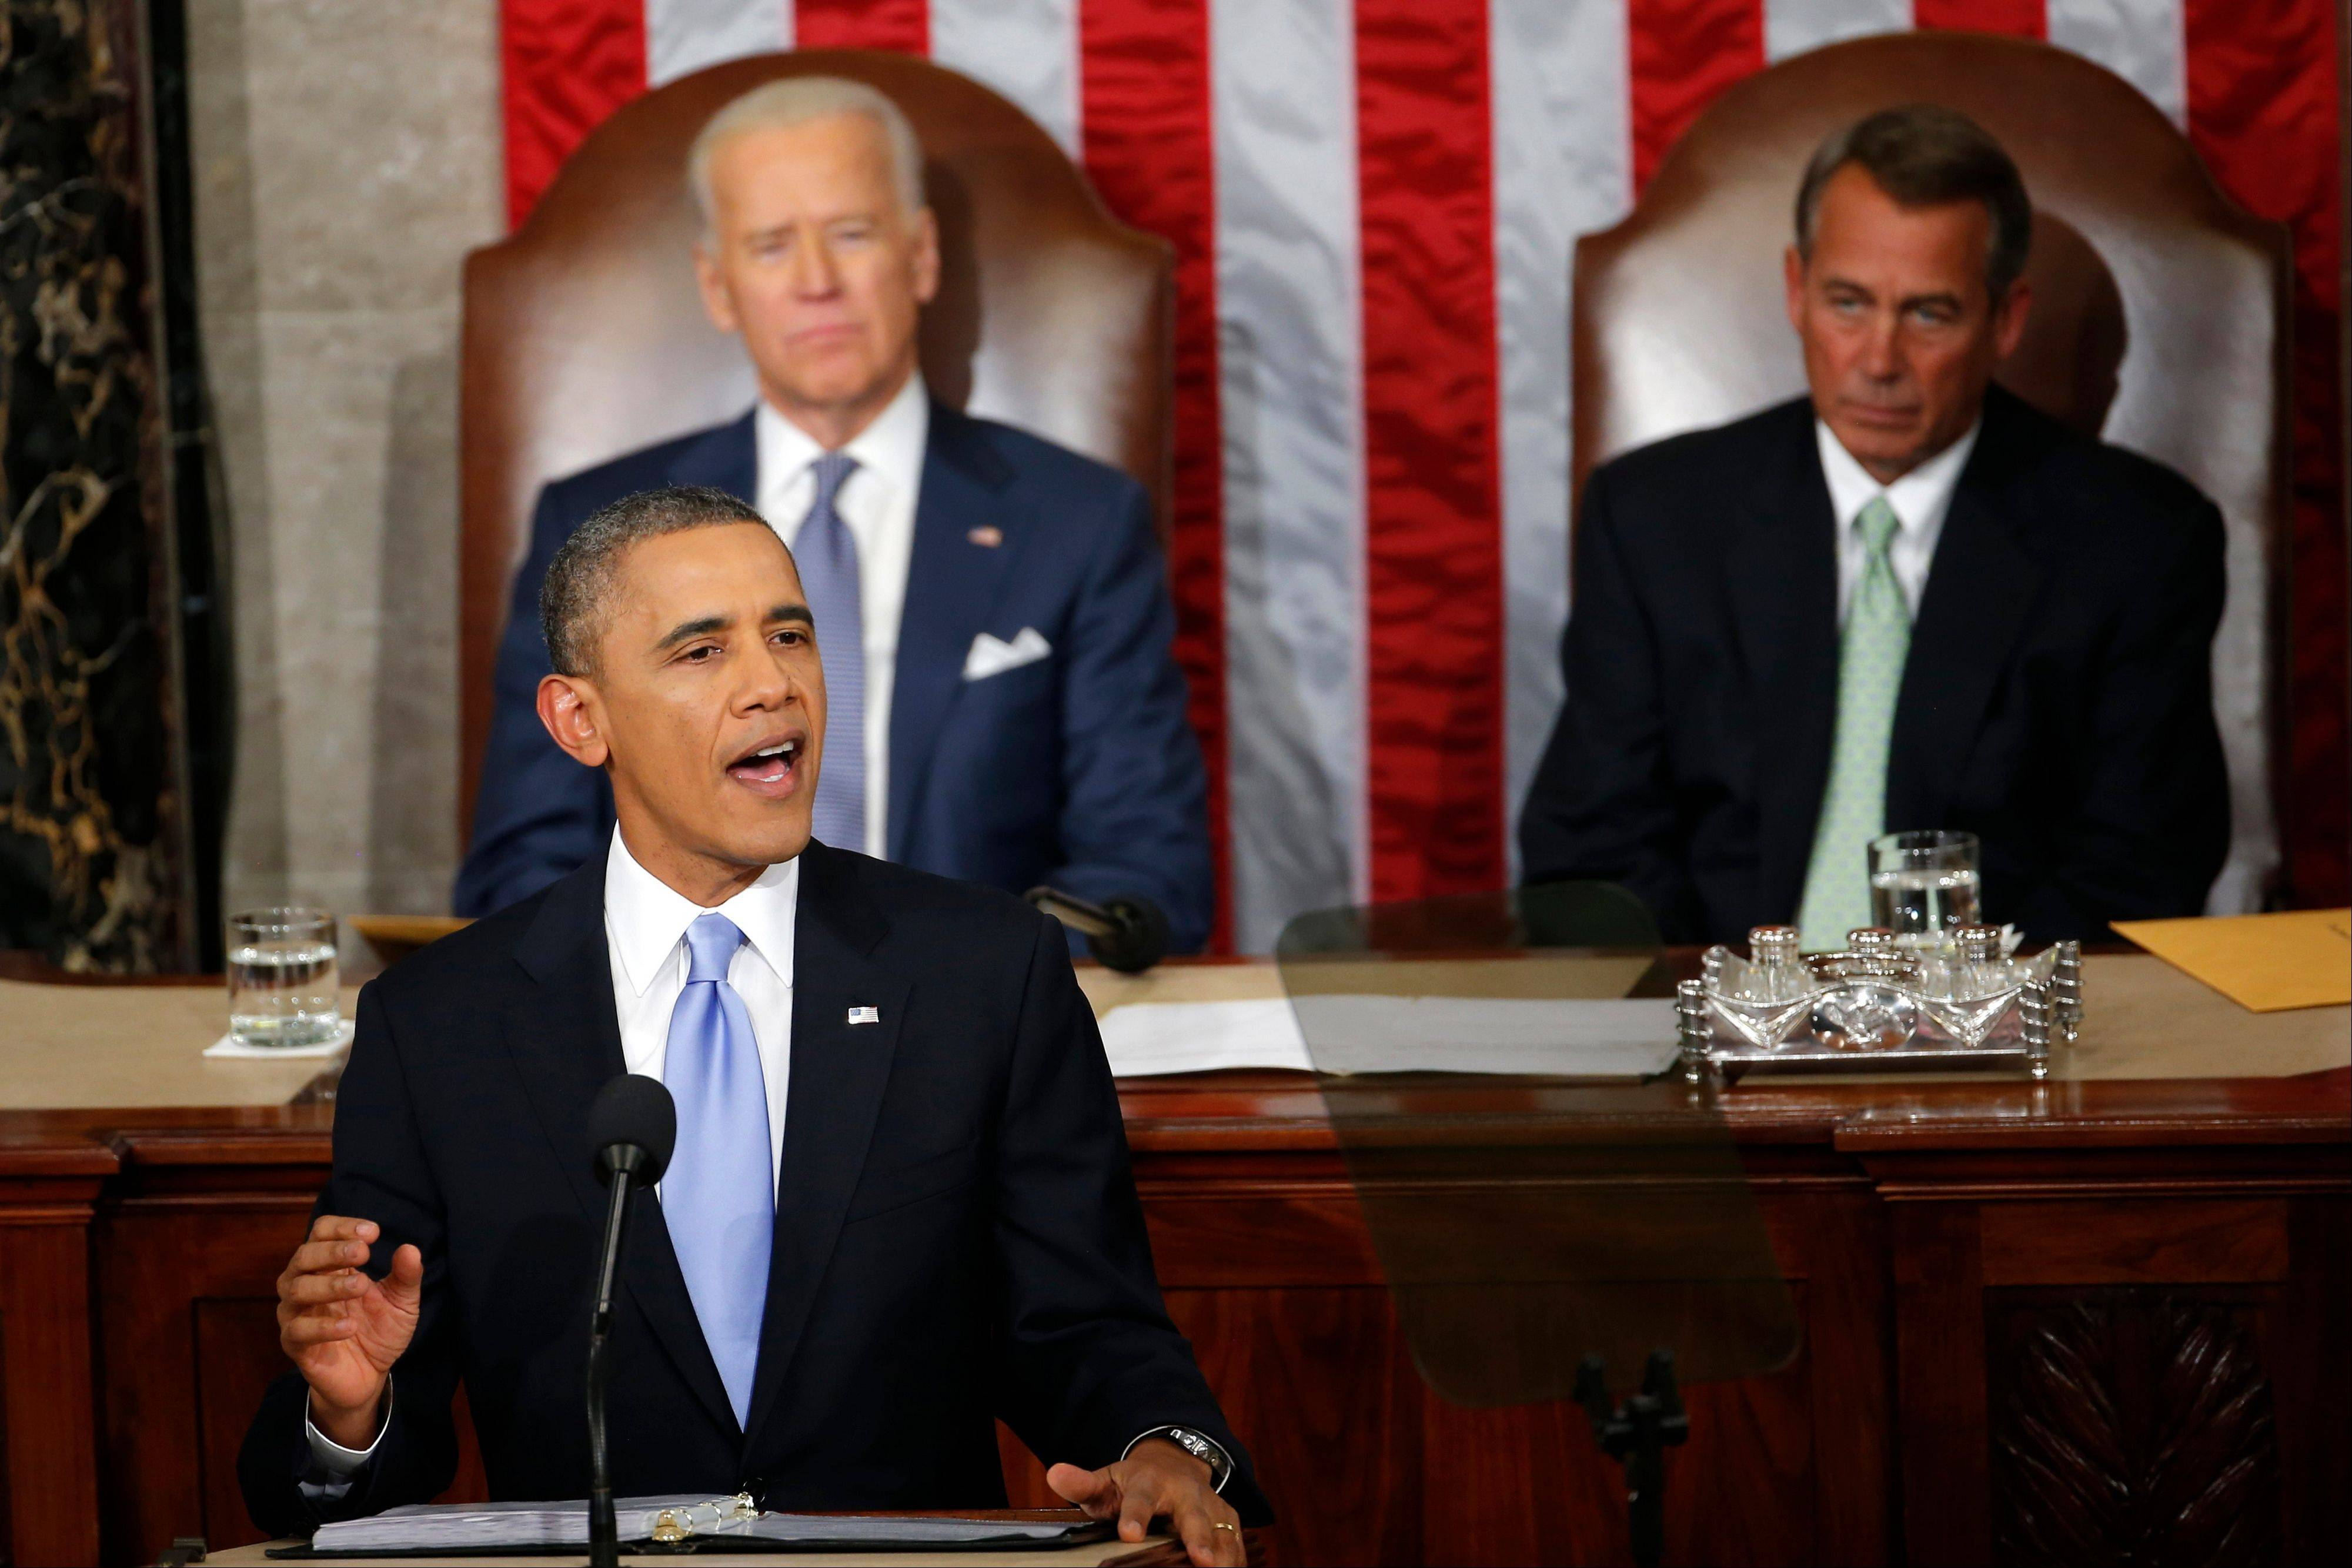 President Barack Obama gives his State of the Union address on Capitol Hill Tuesday, as Vice President Joe Biden and House Speaker John Boehner of Ohio listen.